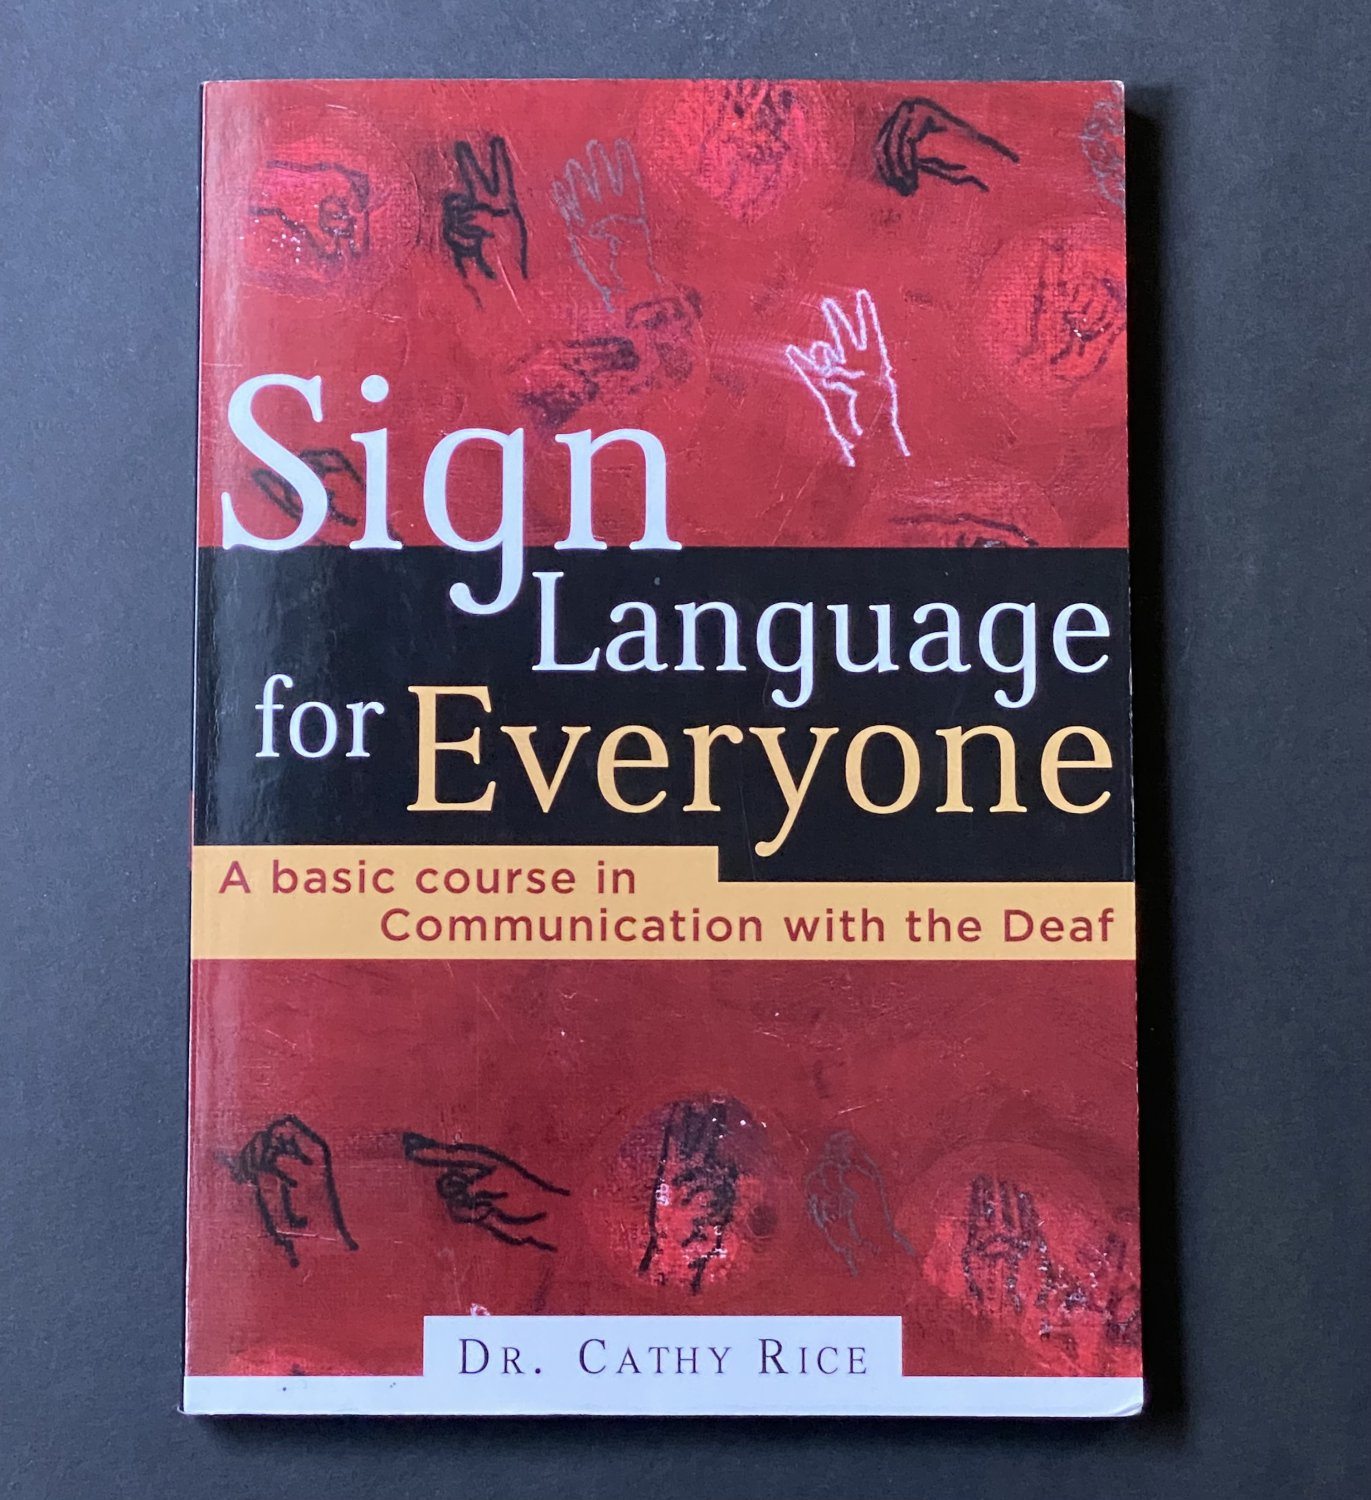 Sign Language for Everyone: Communication with the Deaf by Cathy Rice